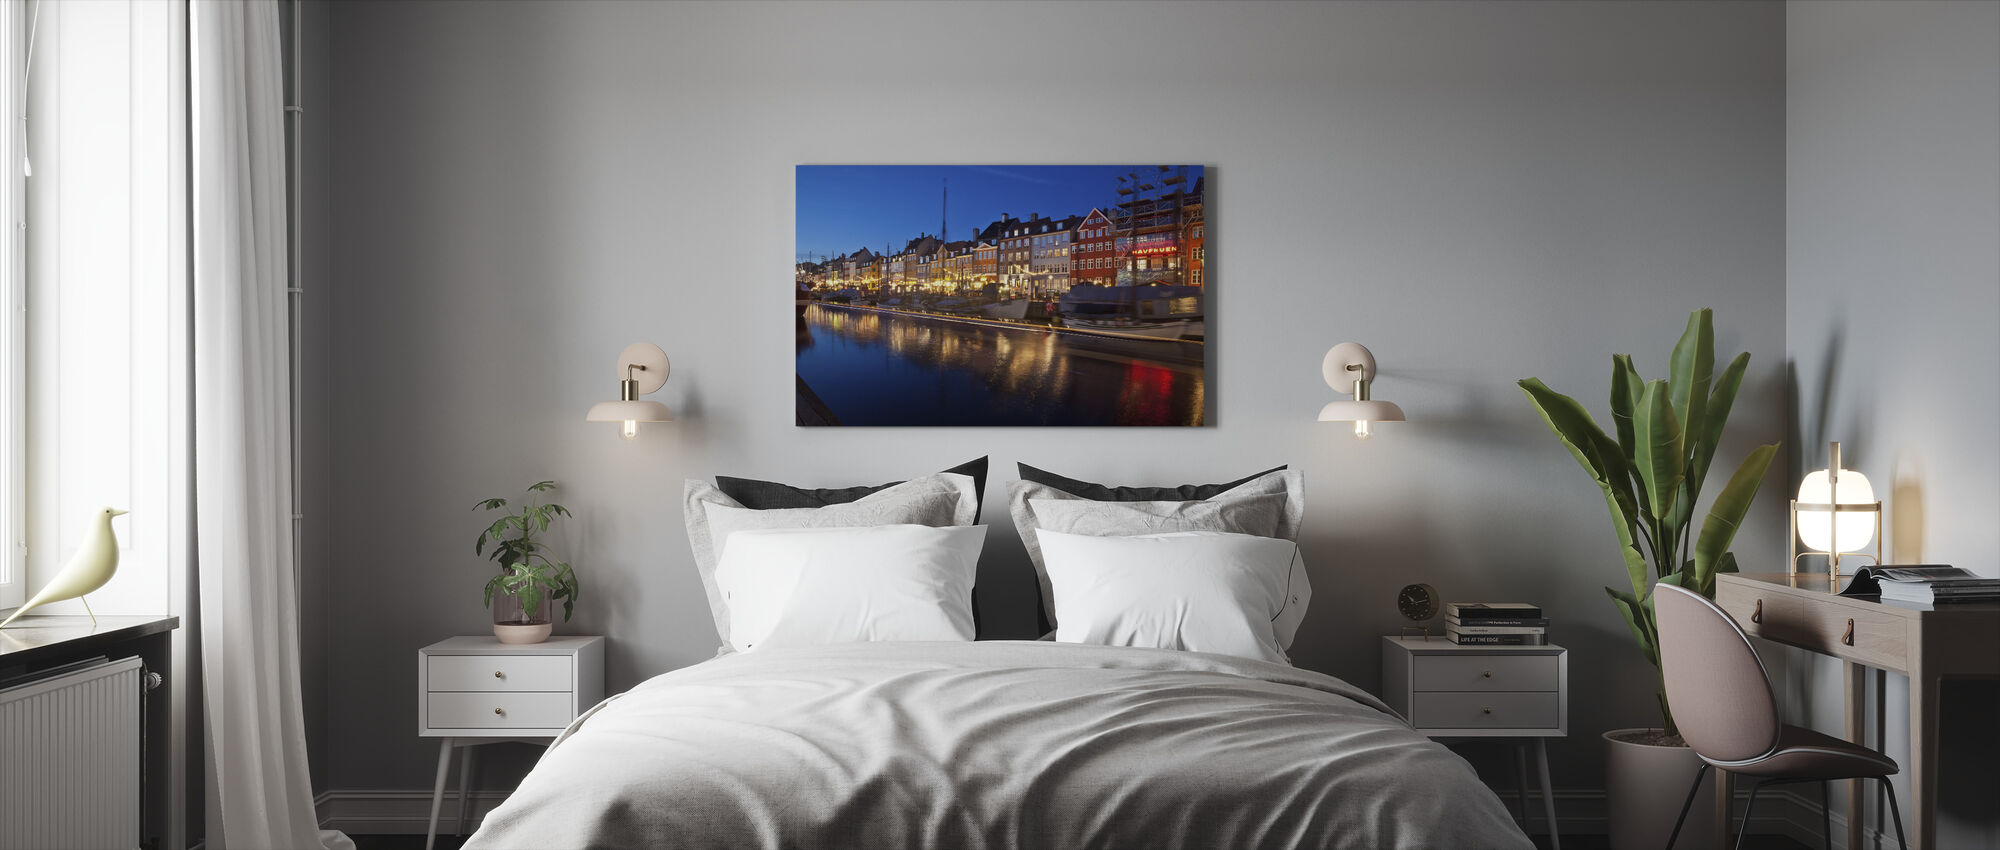 Night in Nyhavn, Copenhagen, Denmark - Canvas print - Bedroom